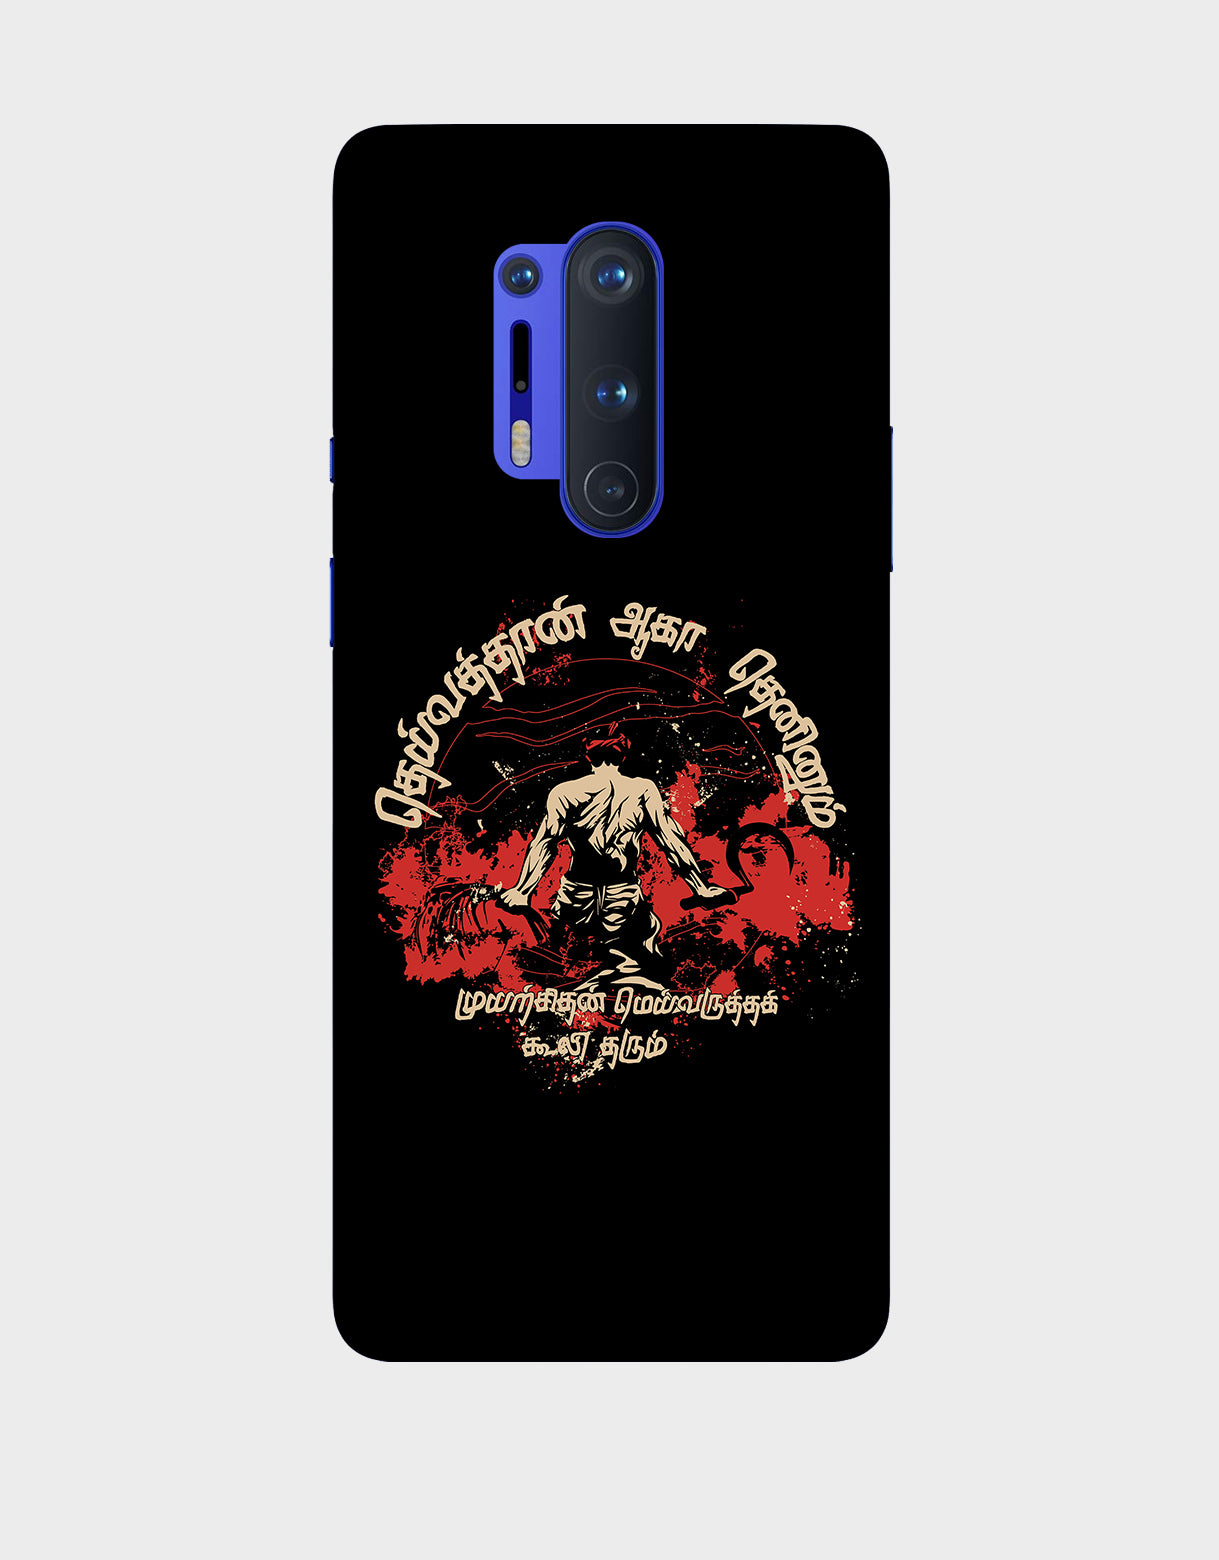 Theivathan -OnePlus 8 Pro Mobile covers